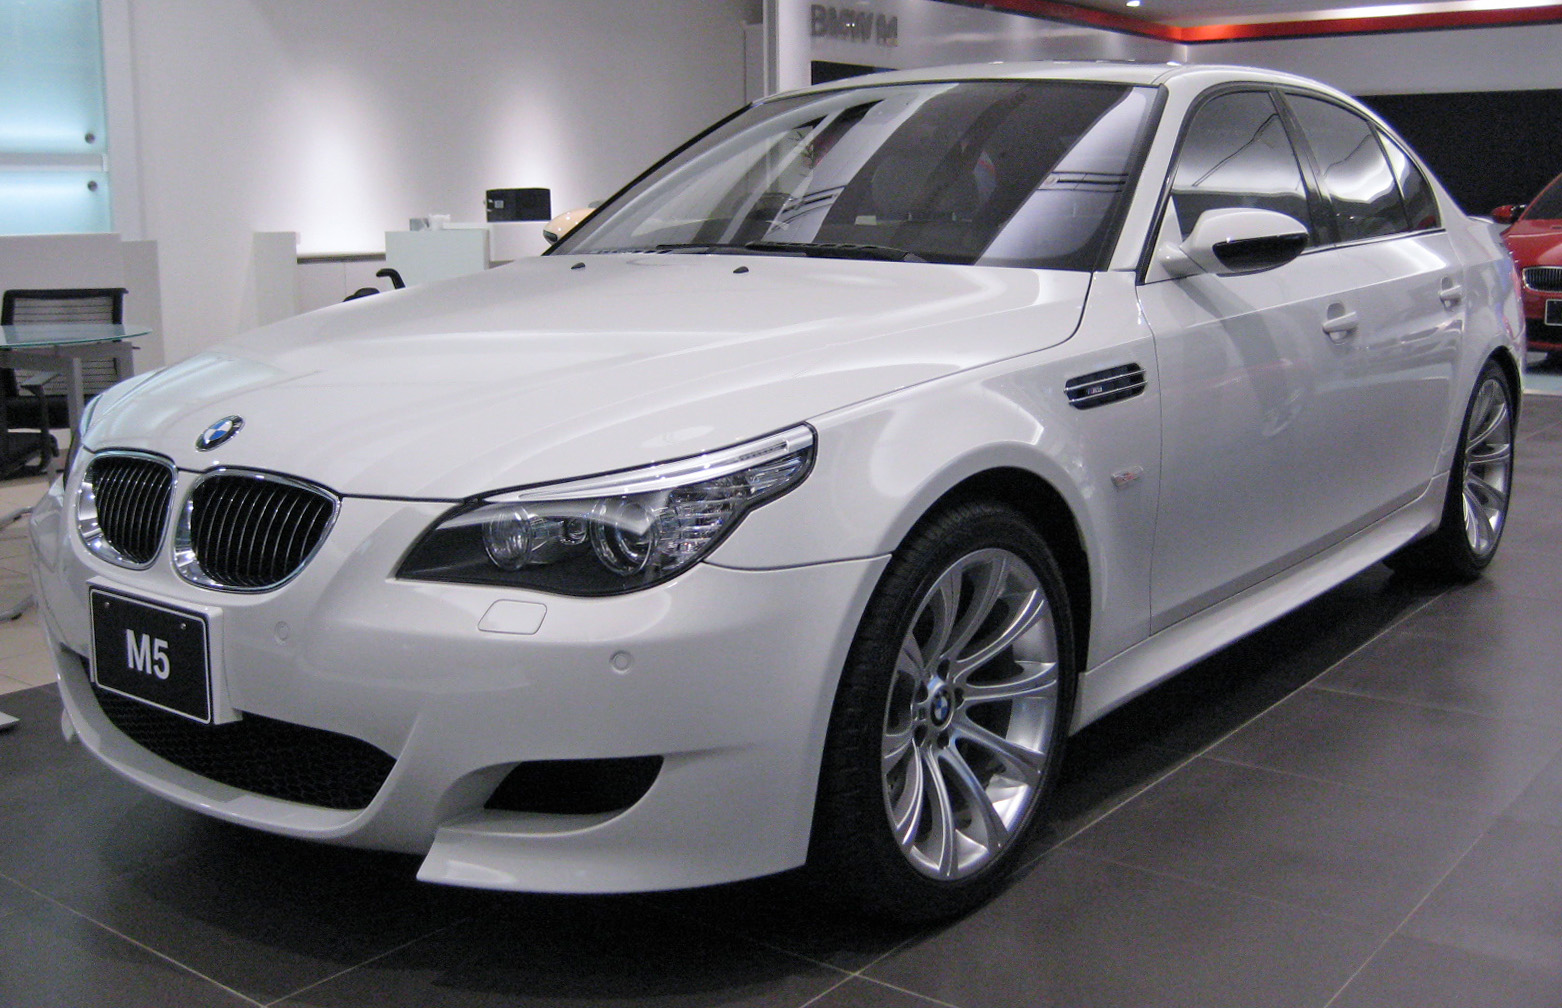 File:BMW E60 M5 1.JPG - Wikimedia Commons